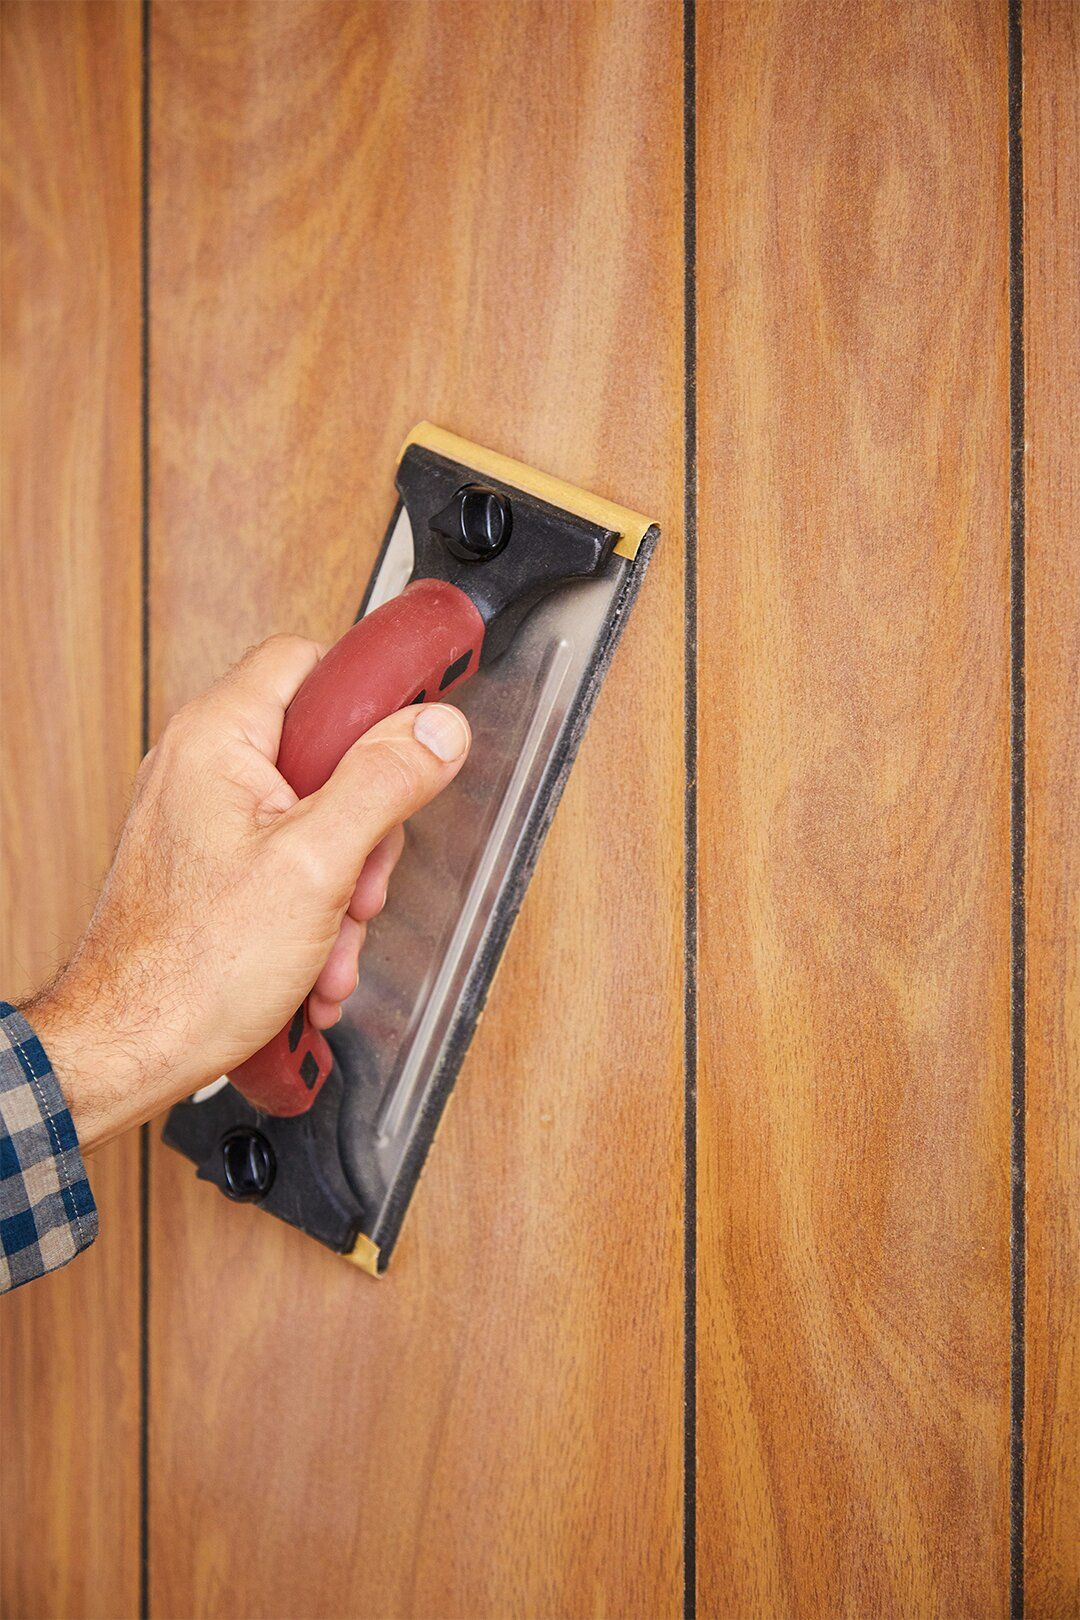 How To Paint Wood Paneling Like A Pro In 2020 Painting Wood Paneling Wood Paneling Wood Panel Walls